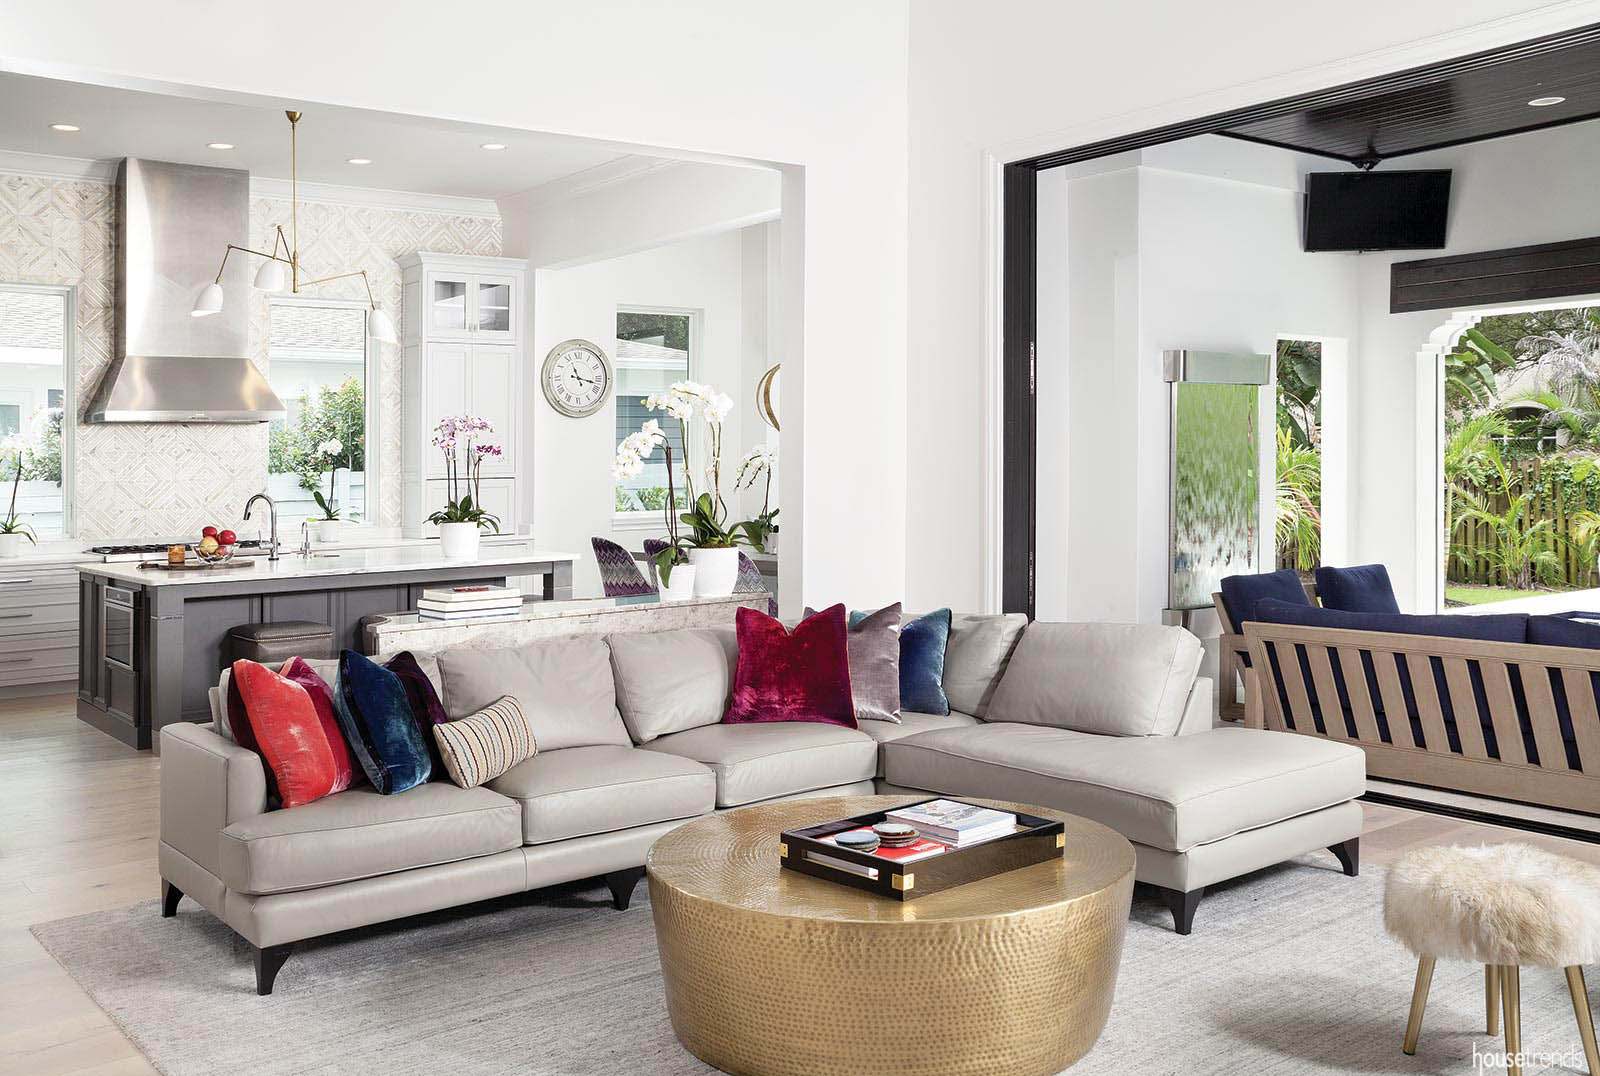 Accent pillows brighten up a great room